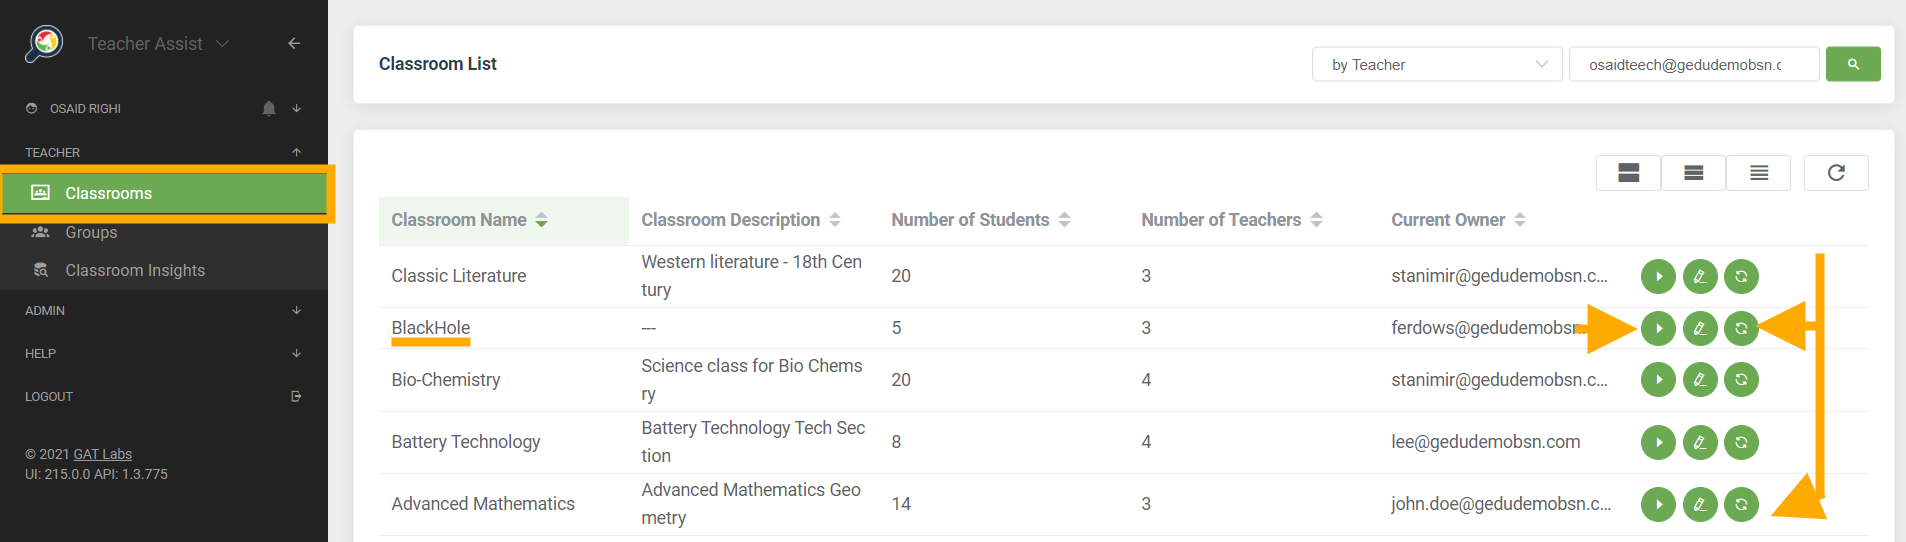 Teacher Assist   How To Lock Students for Exams In Google Classrooms 2